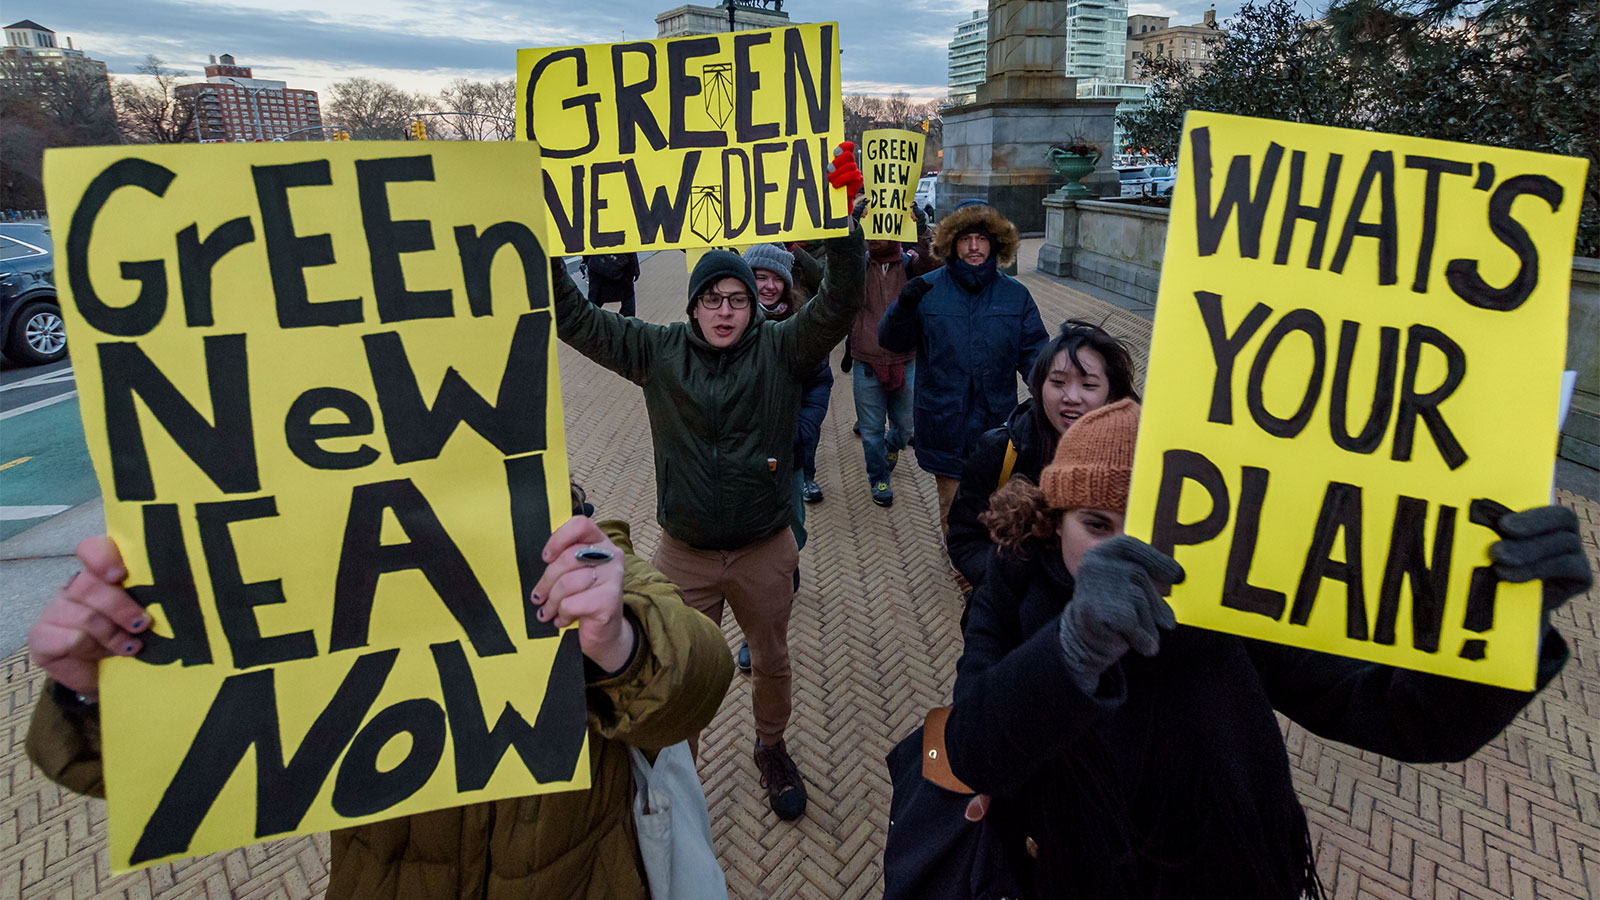 Green New Deal supporters hold signs encouraging action on climate change.